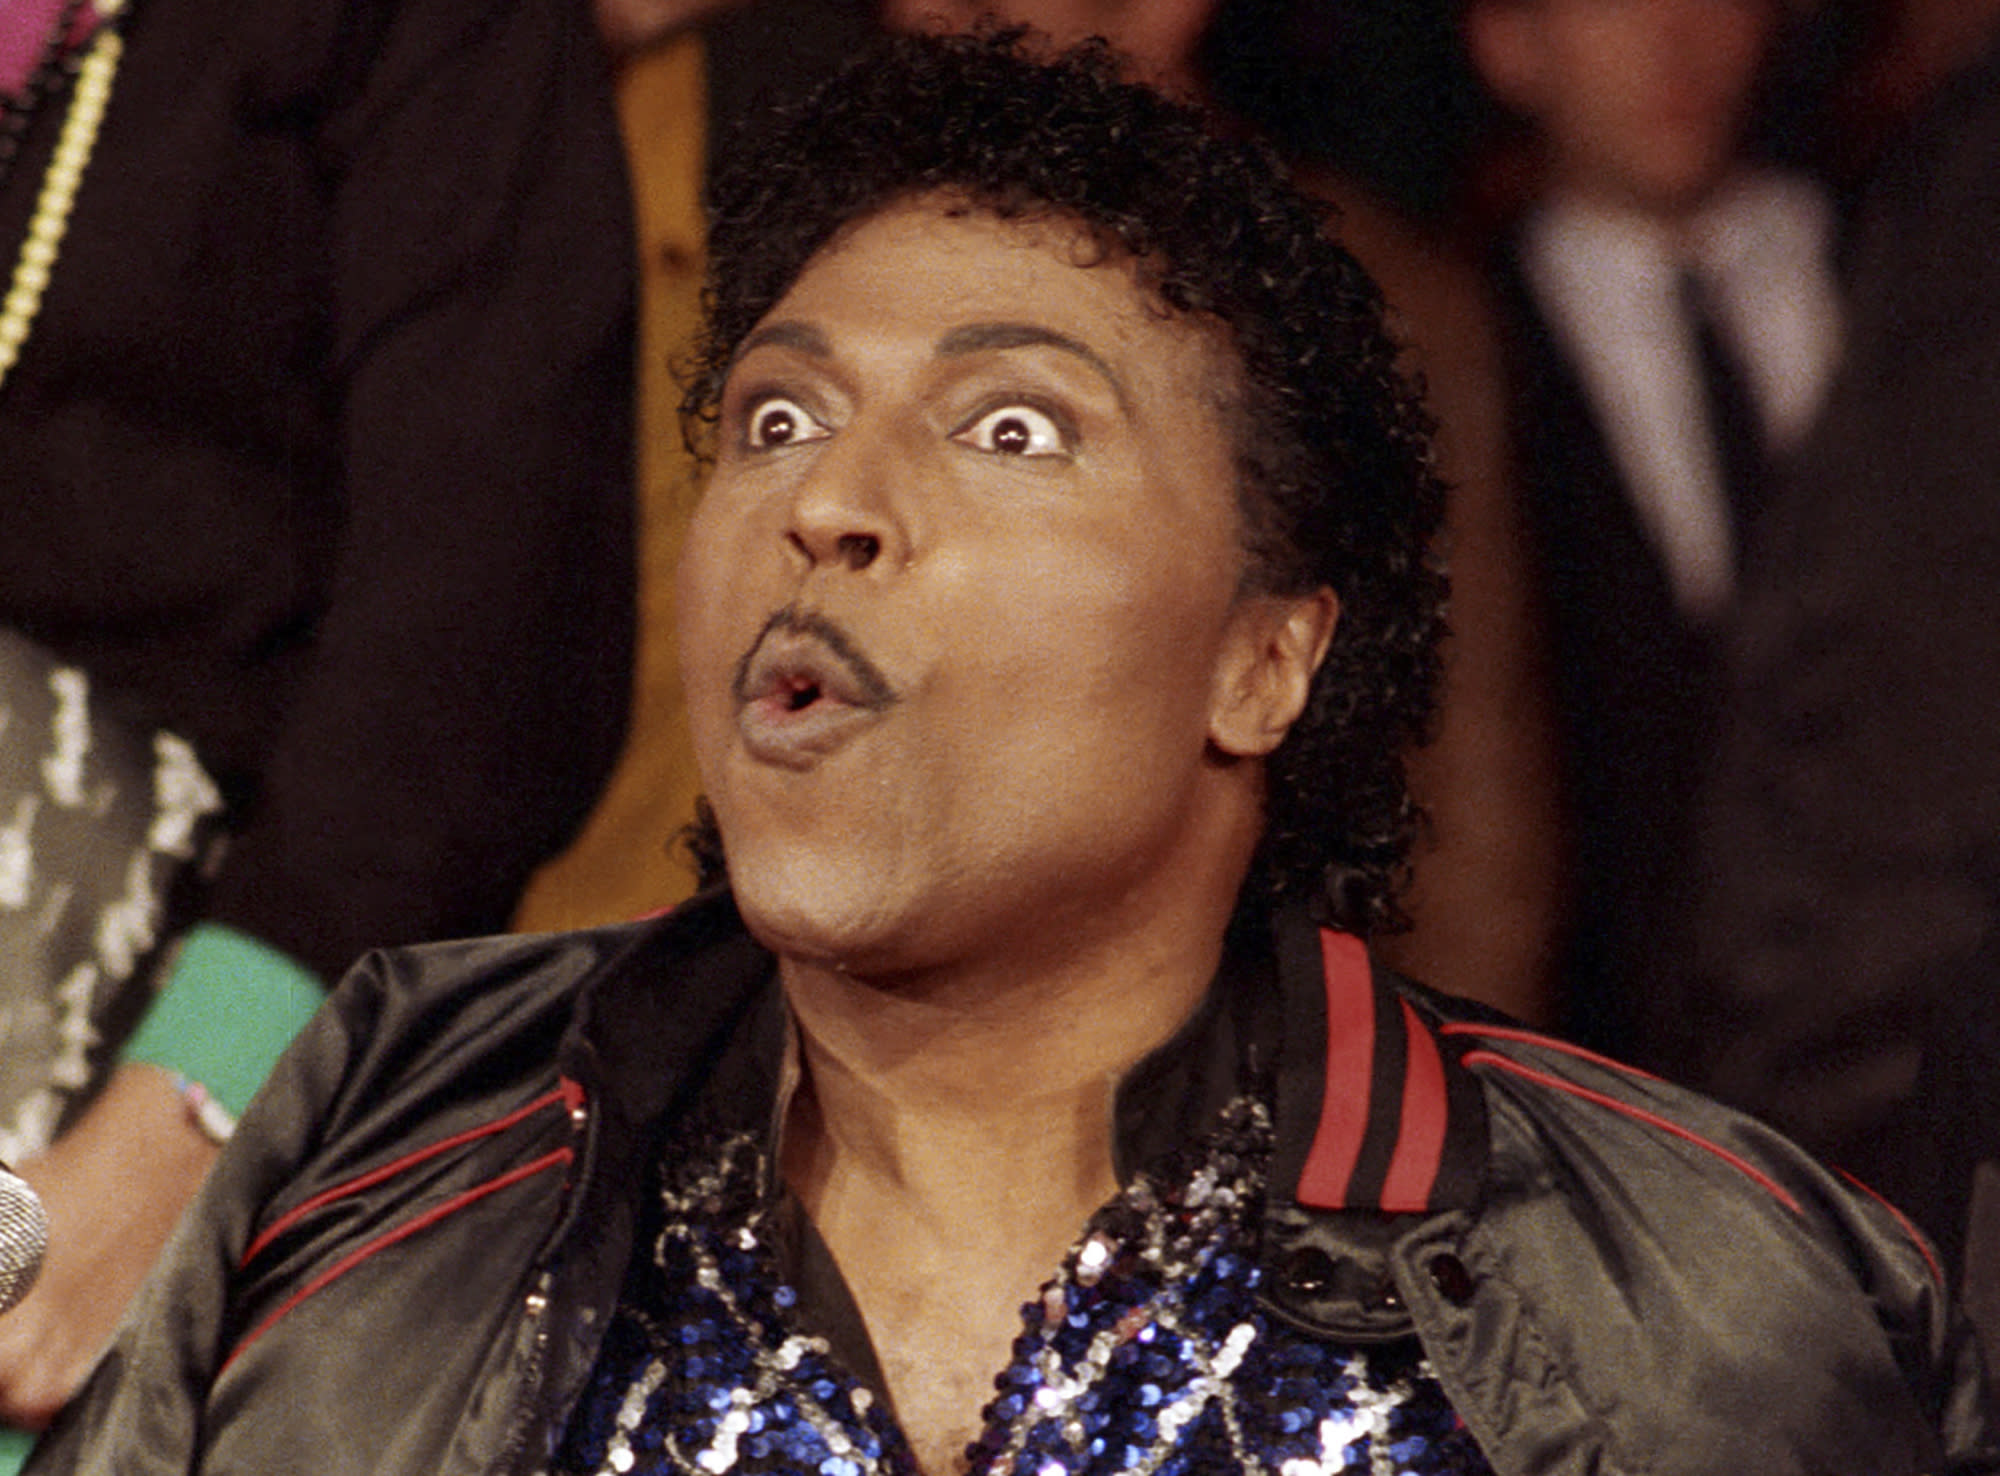 """FILE - In this Nov. 13, 1986 file photo, Little Richard poses for the cameras as he is inducted into Rock Walk, a sidewalk collection of handprints and signatures of rock and roll musicians, in Los Angeles. Little Richard, the self-proclaimed """"architect of rock 'n' roll"""" whose piercing wail, pounding piano and towering pompadour irrevocably altered popular music while introducing black R&B to white America, has died Saturday, May 9, 2020. (AP Photo/Mark Avery, File)"""